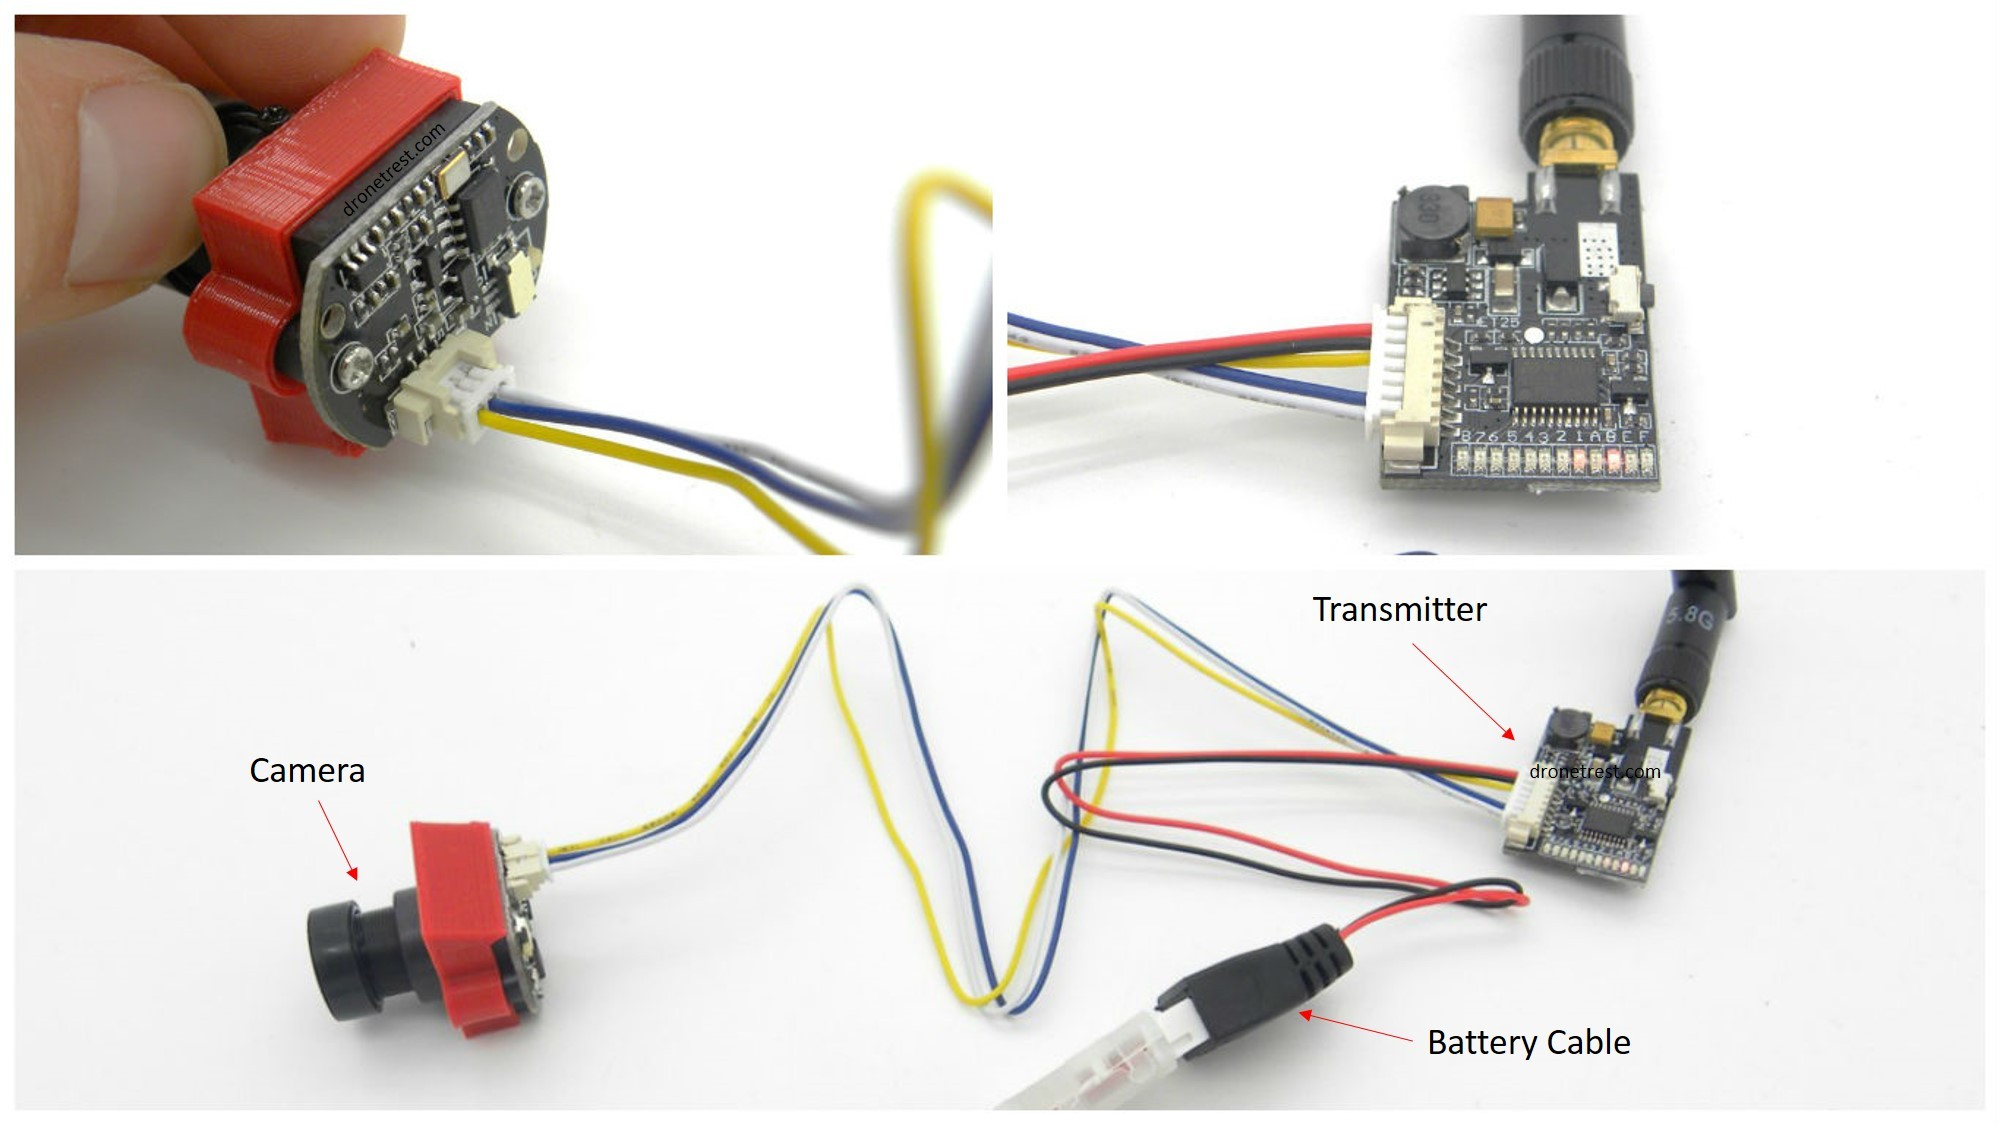 fpv racing drone wiring diagram moen shower valve parts camera and transmitter for micro